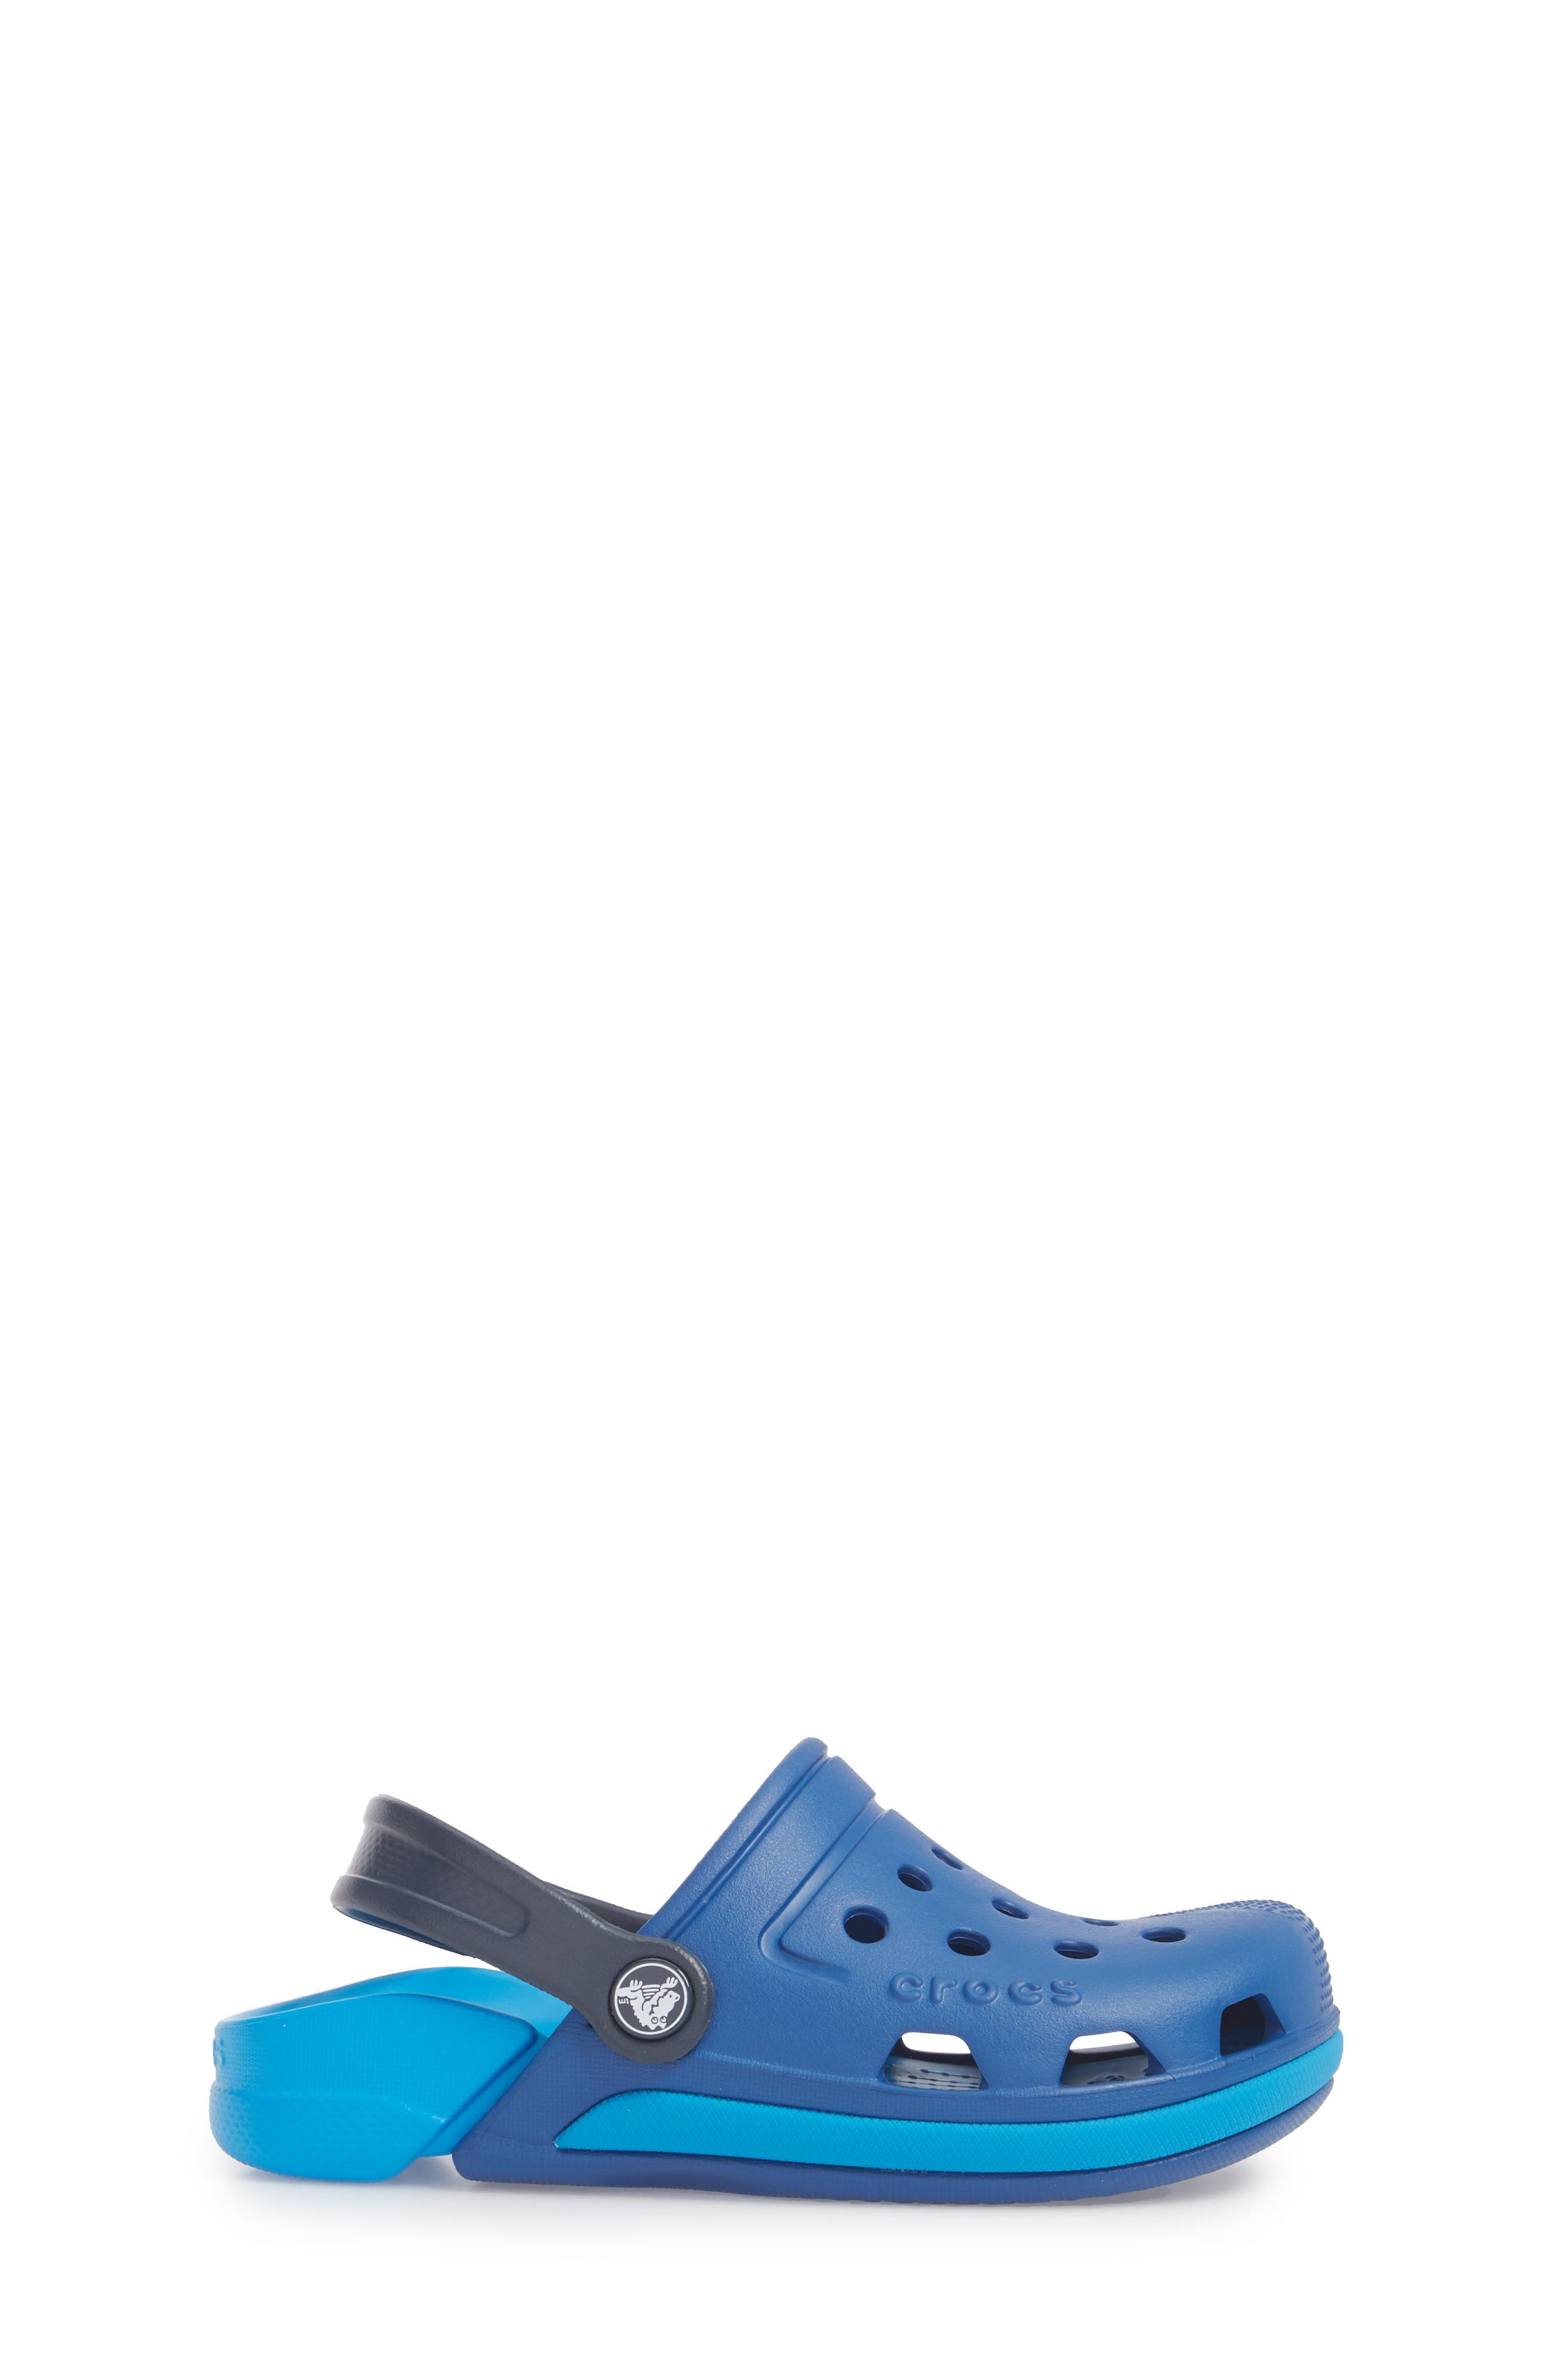 CROCS<SUP>™</SUP>,                             Electro III Slip-On,                             Alternate thumbnail 3, color,                             432